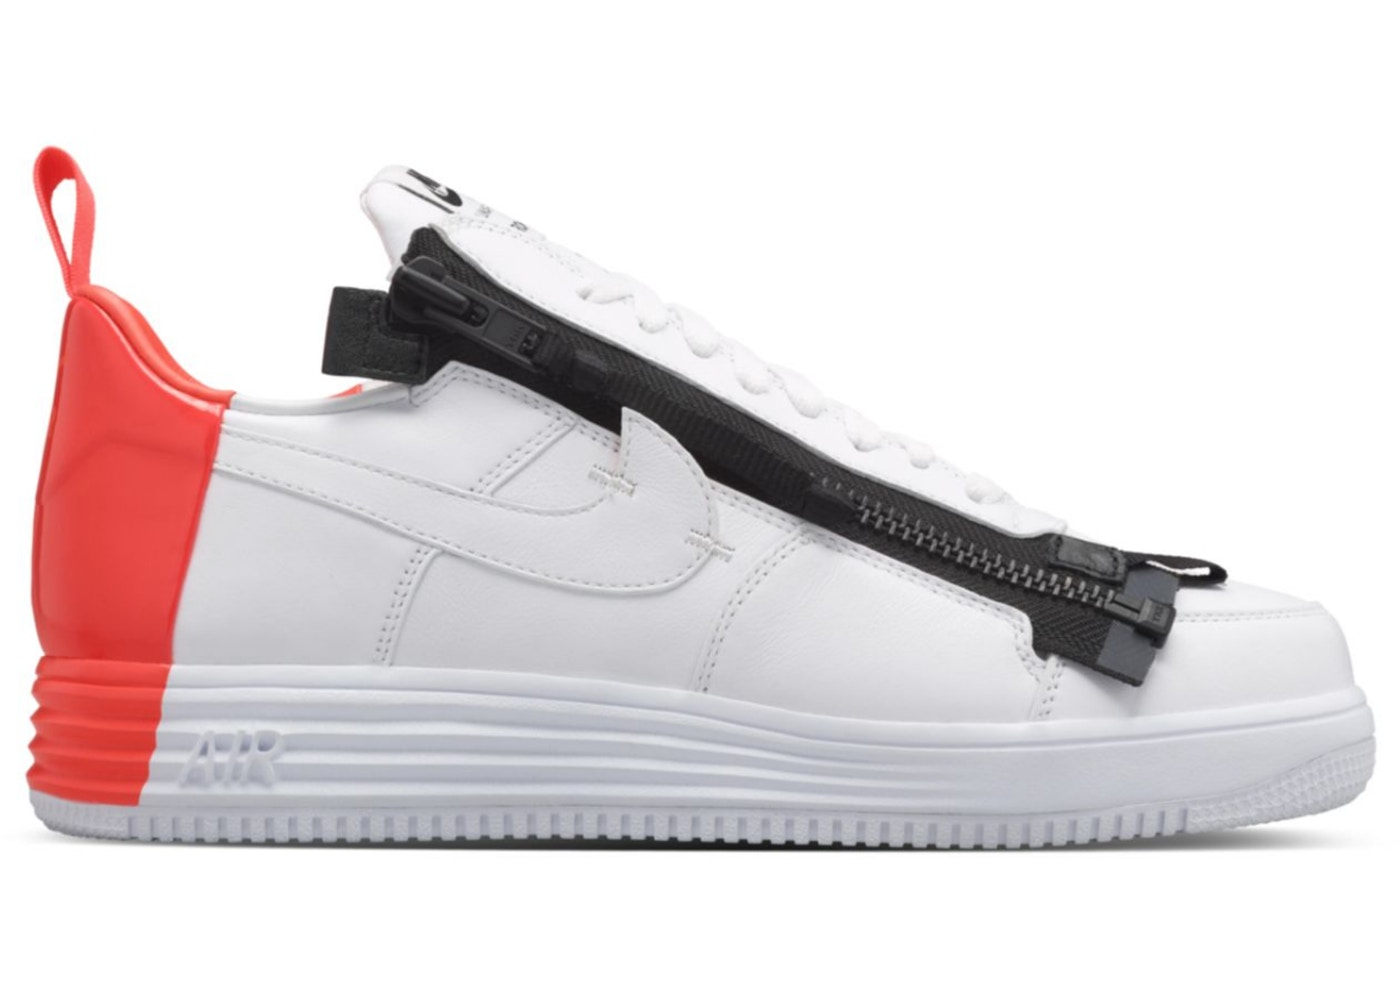 Lunar Force 1 Low Acronym Bright Crimson